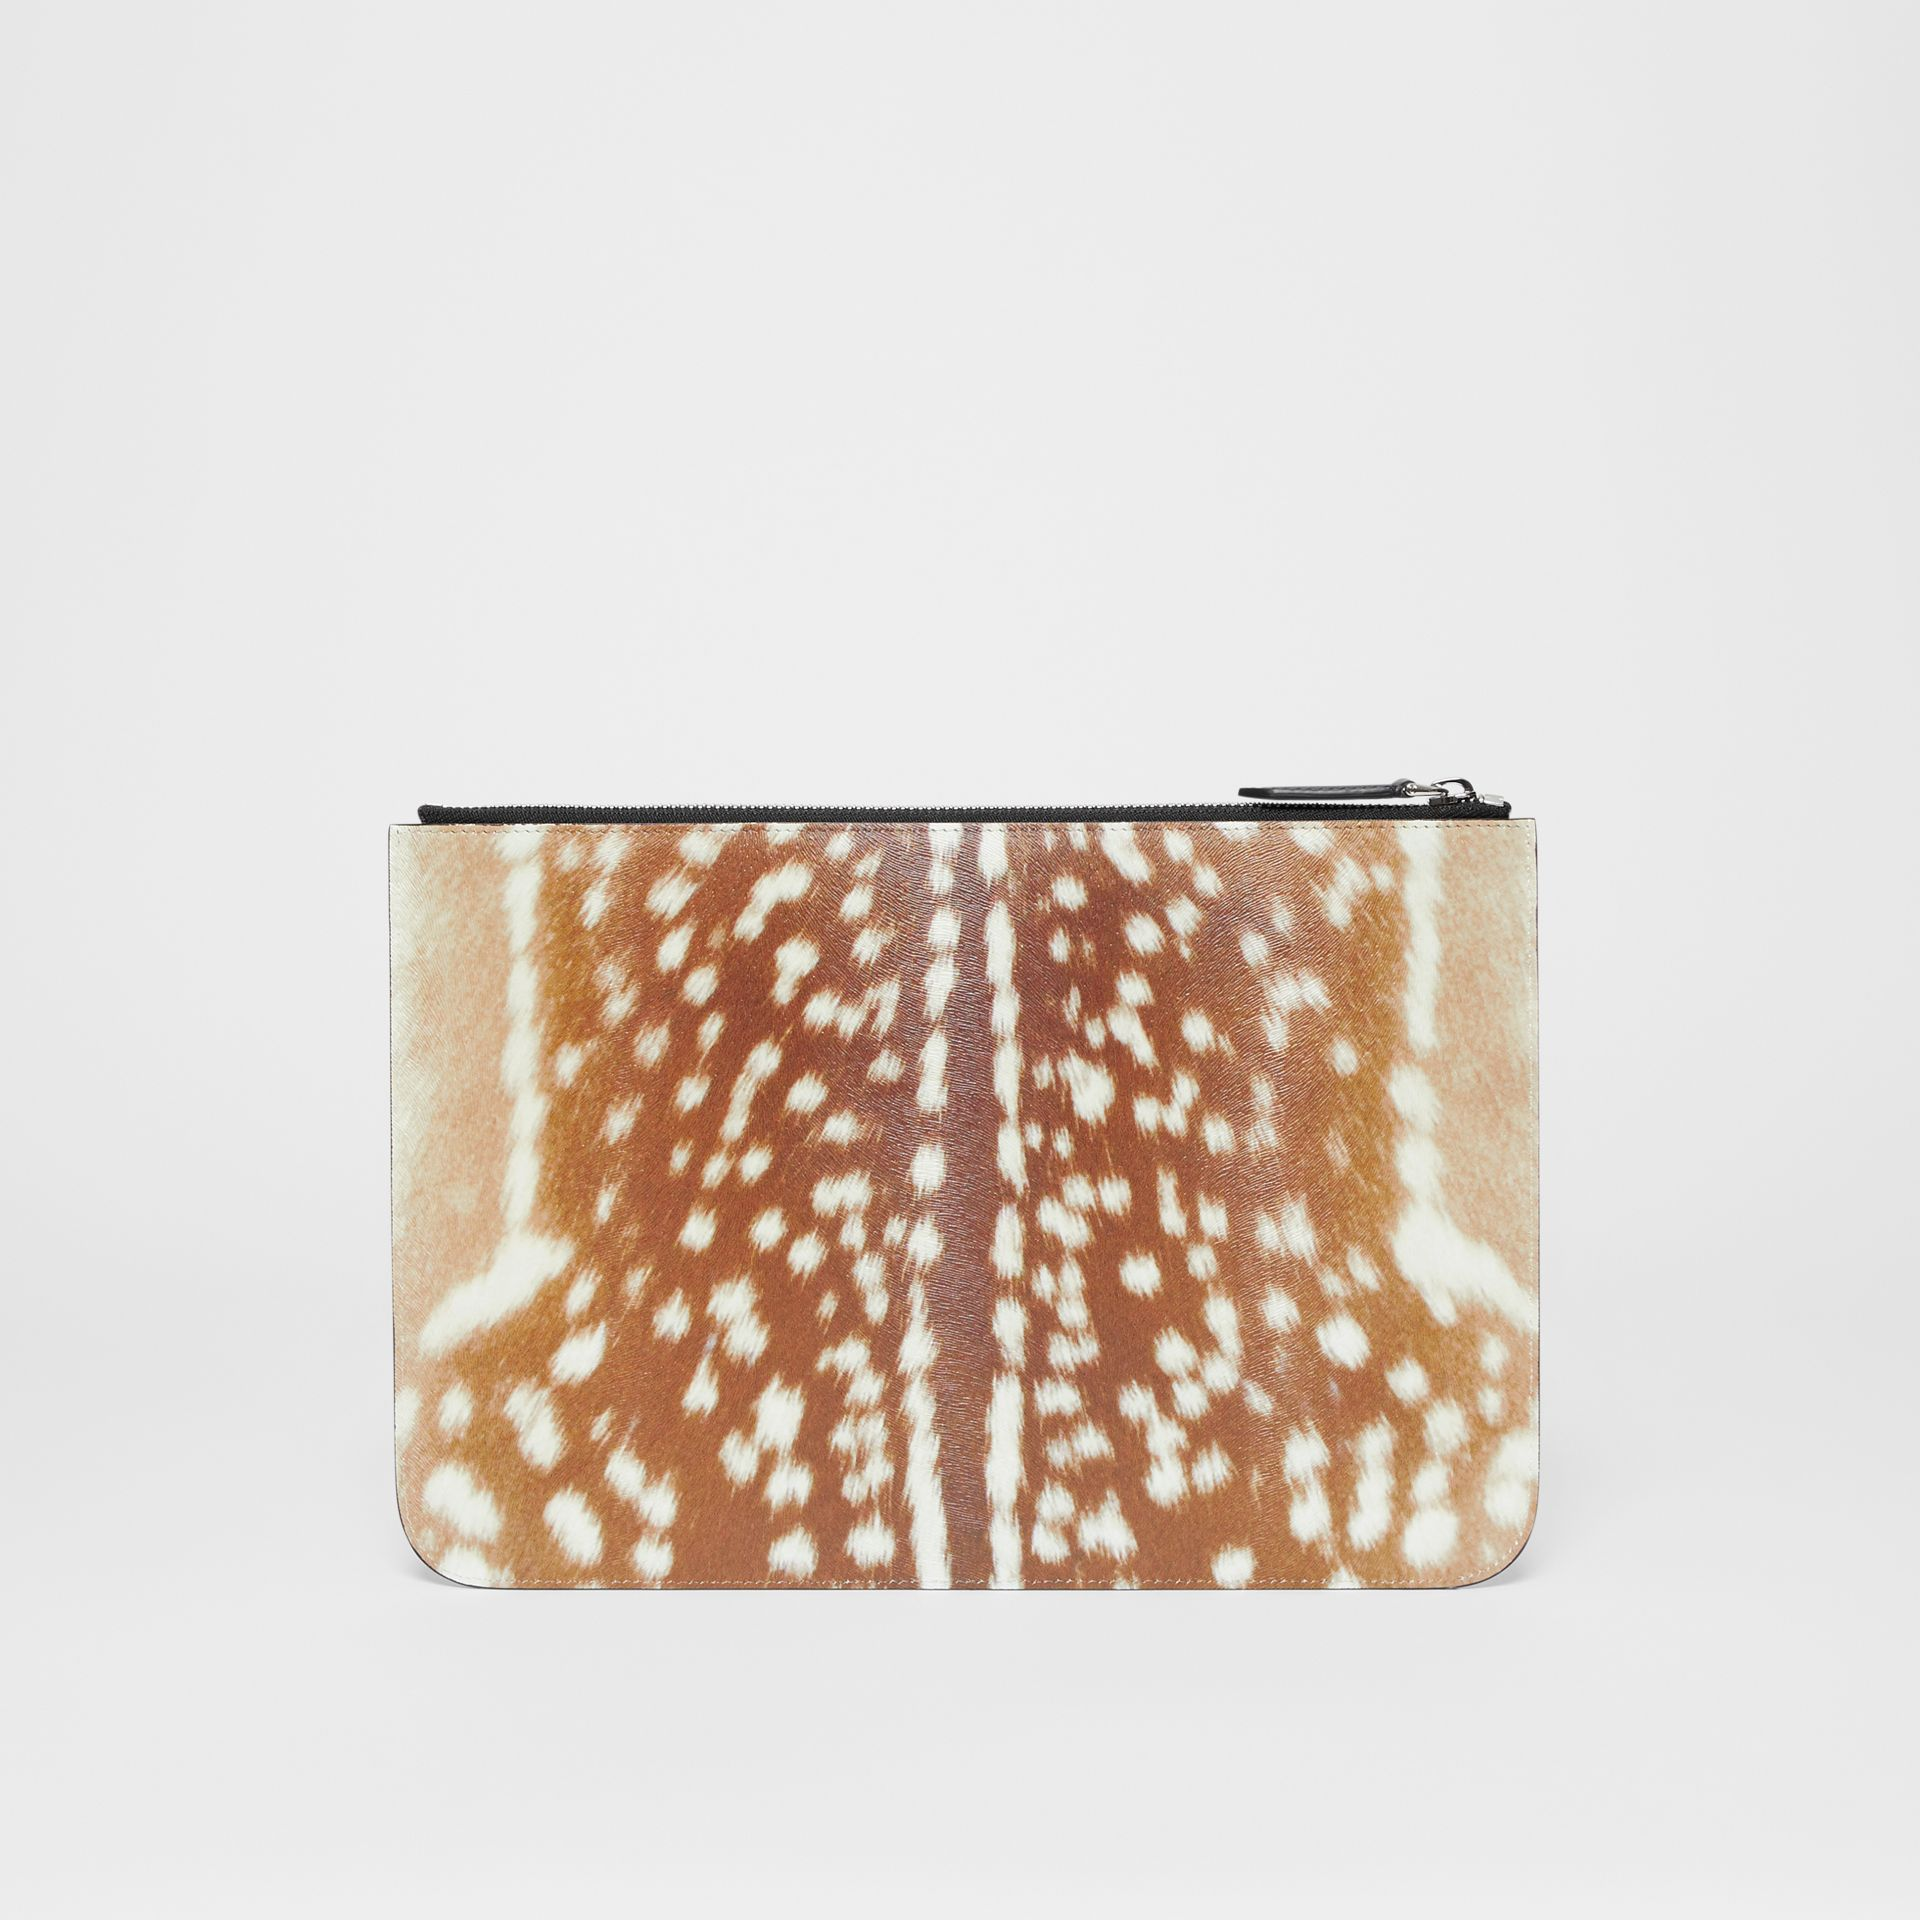 Deer Print Leather Zip Pouch in Tan | Burberry - gallery image 7